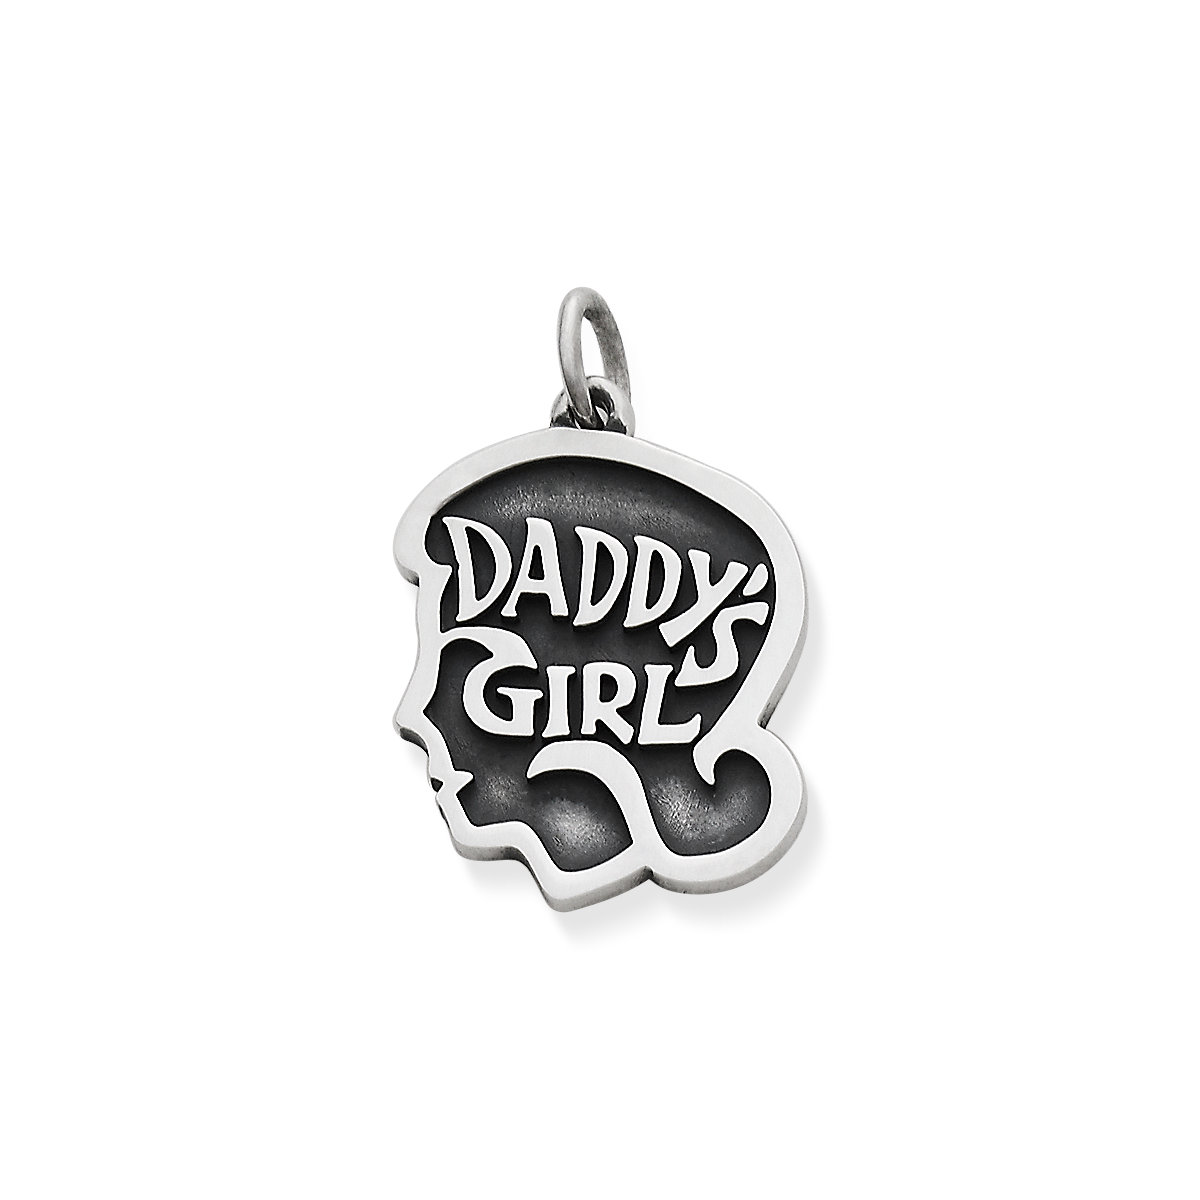 Daddys Girl Charm James Avery